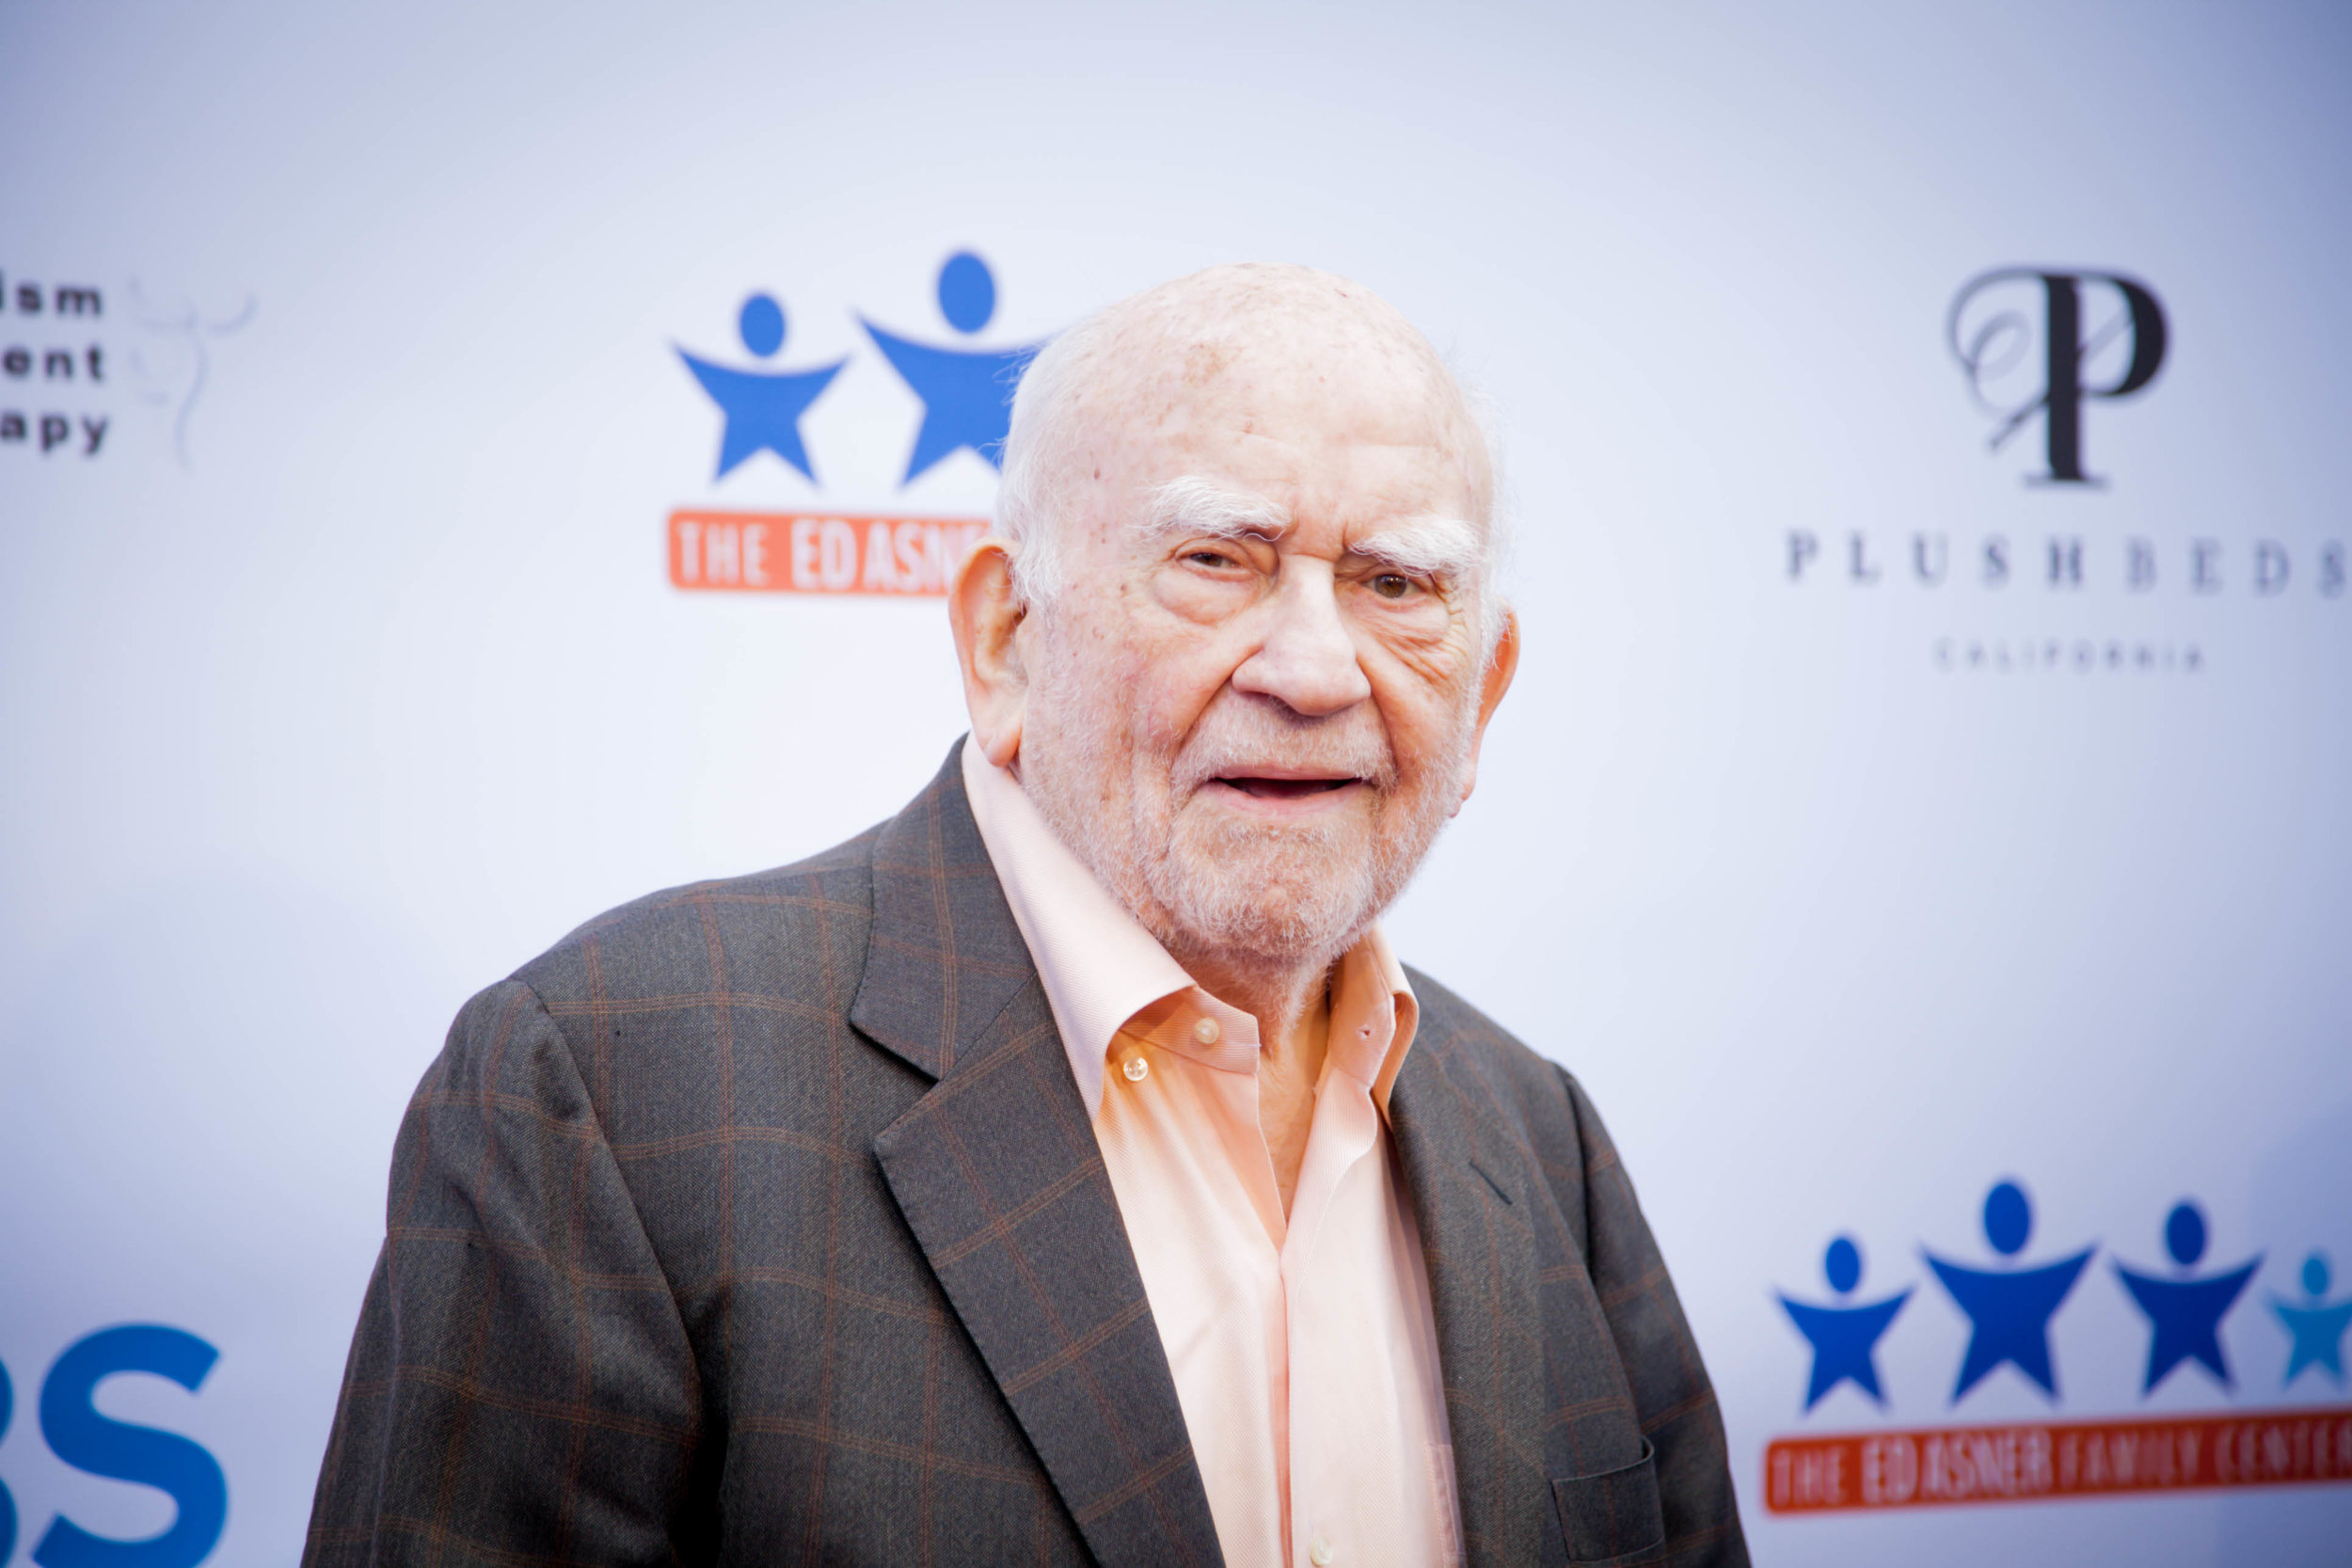 Ed Asner. Photo by Erin Poole for Average Socialite.